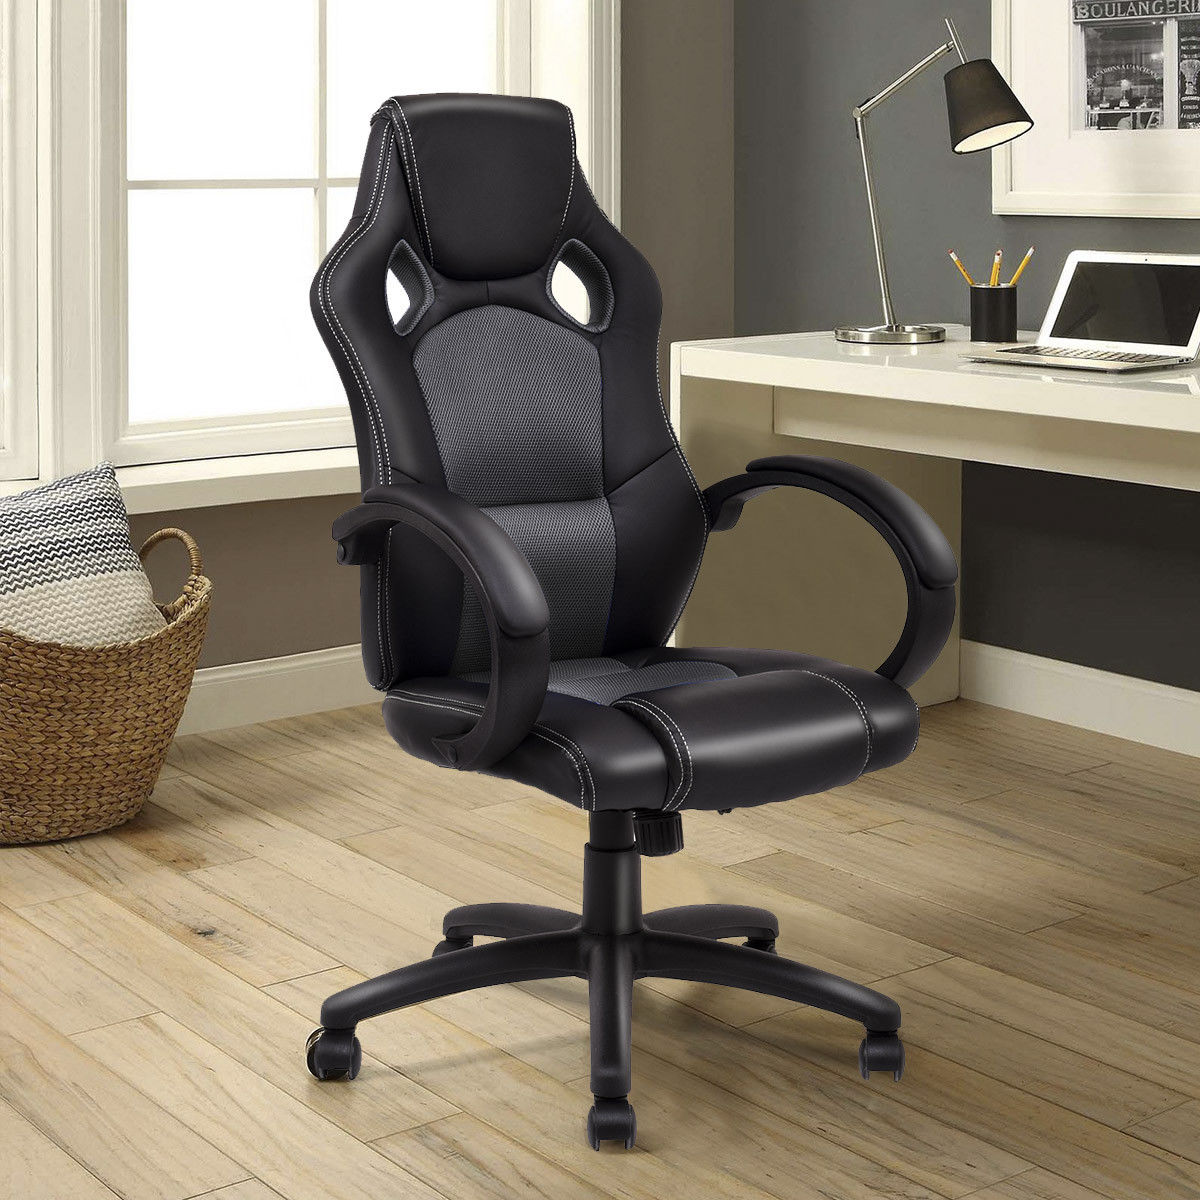 Giantex High Back Racing Chair Pu Leather Bucket Seat Office Computer Desk  Gaming Chair Swivel Executive Furniture HW54590GR In Office Chairs From  Furniture ...